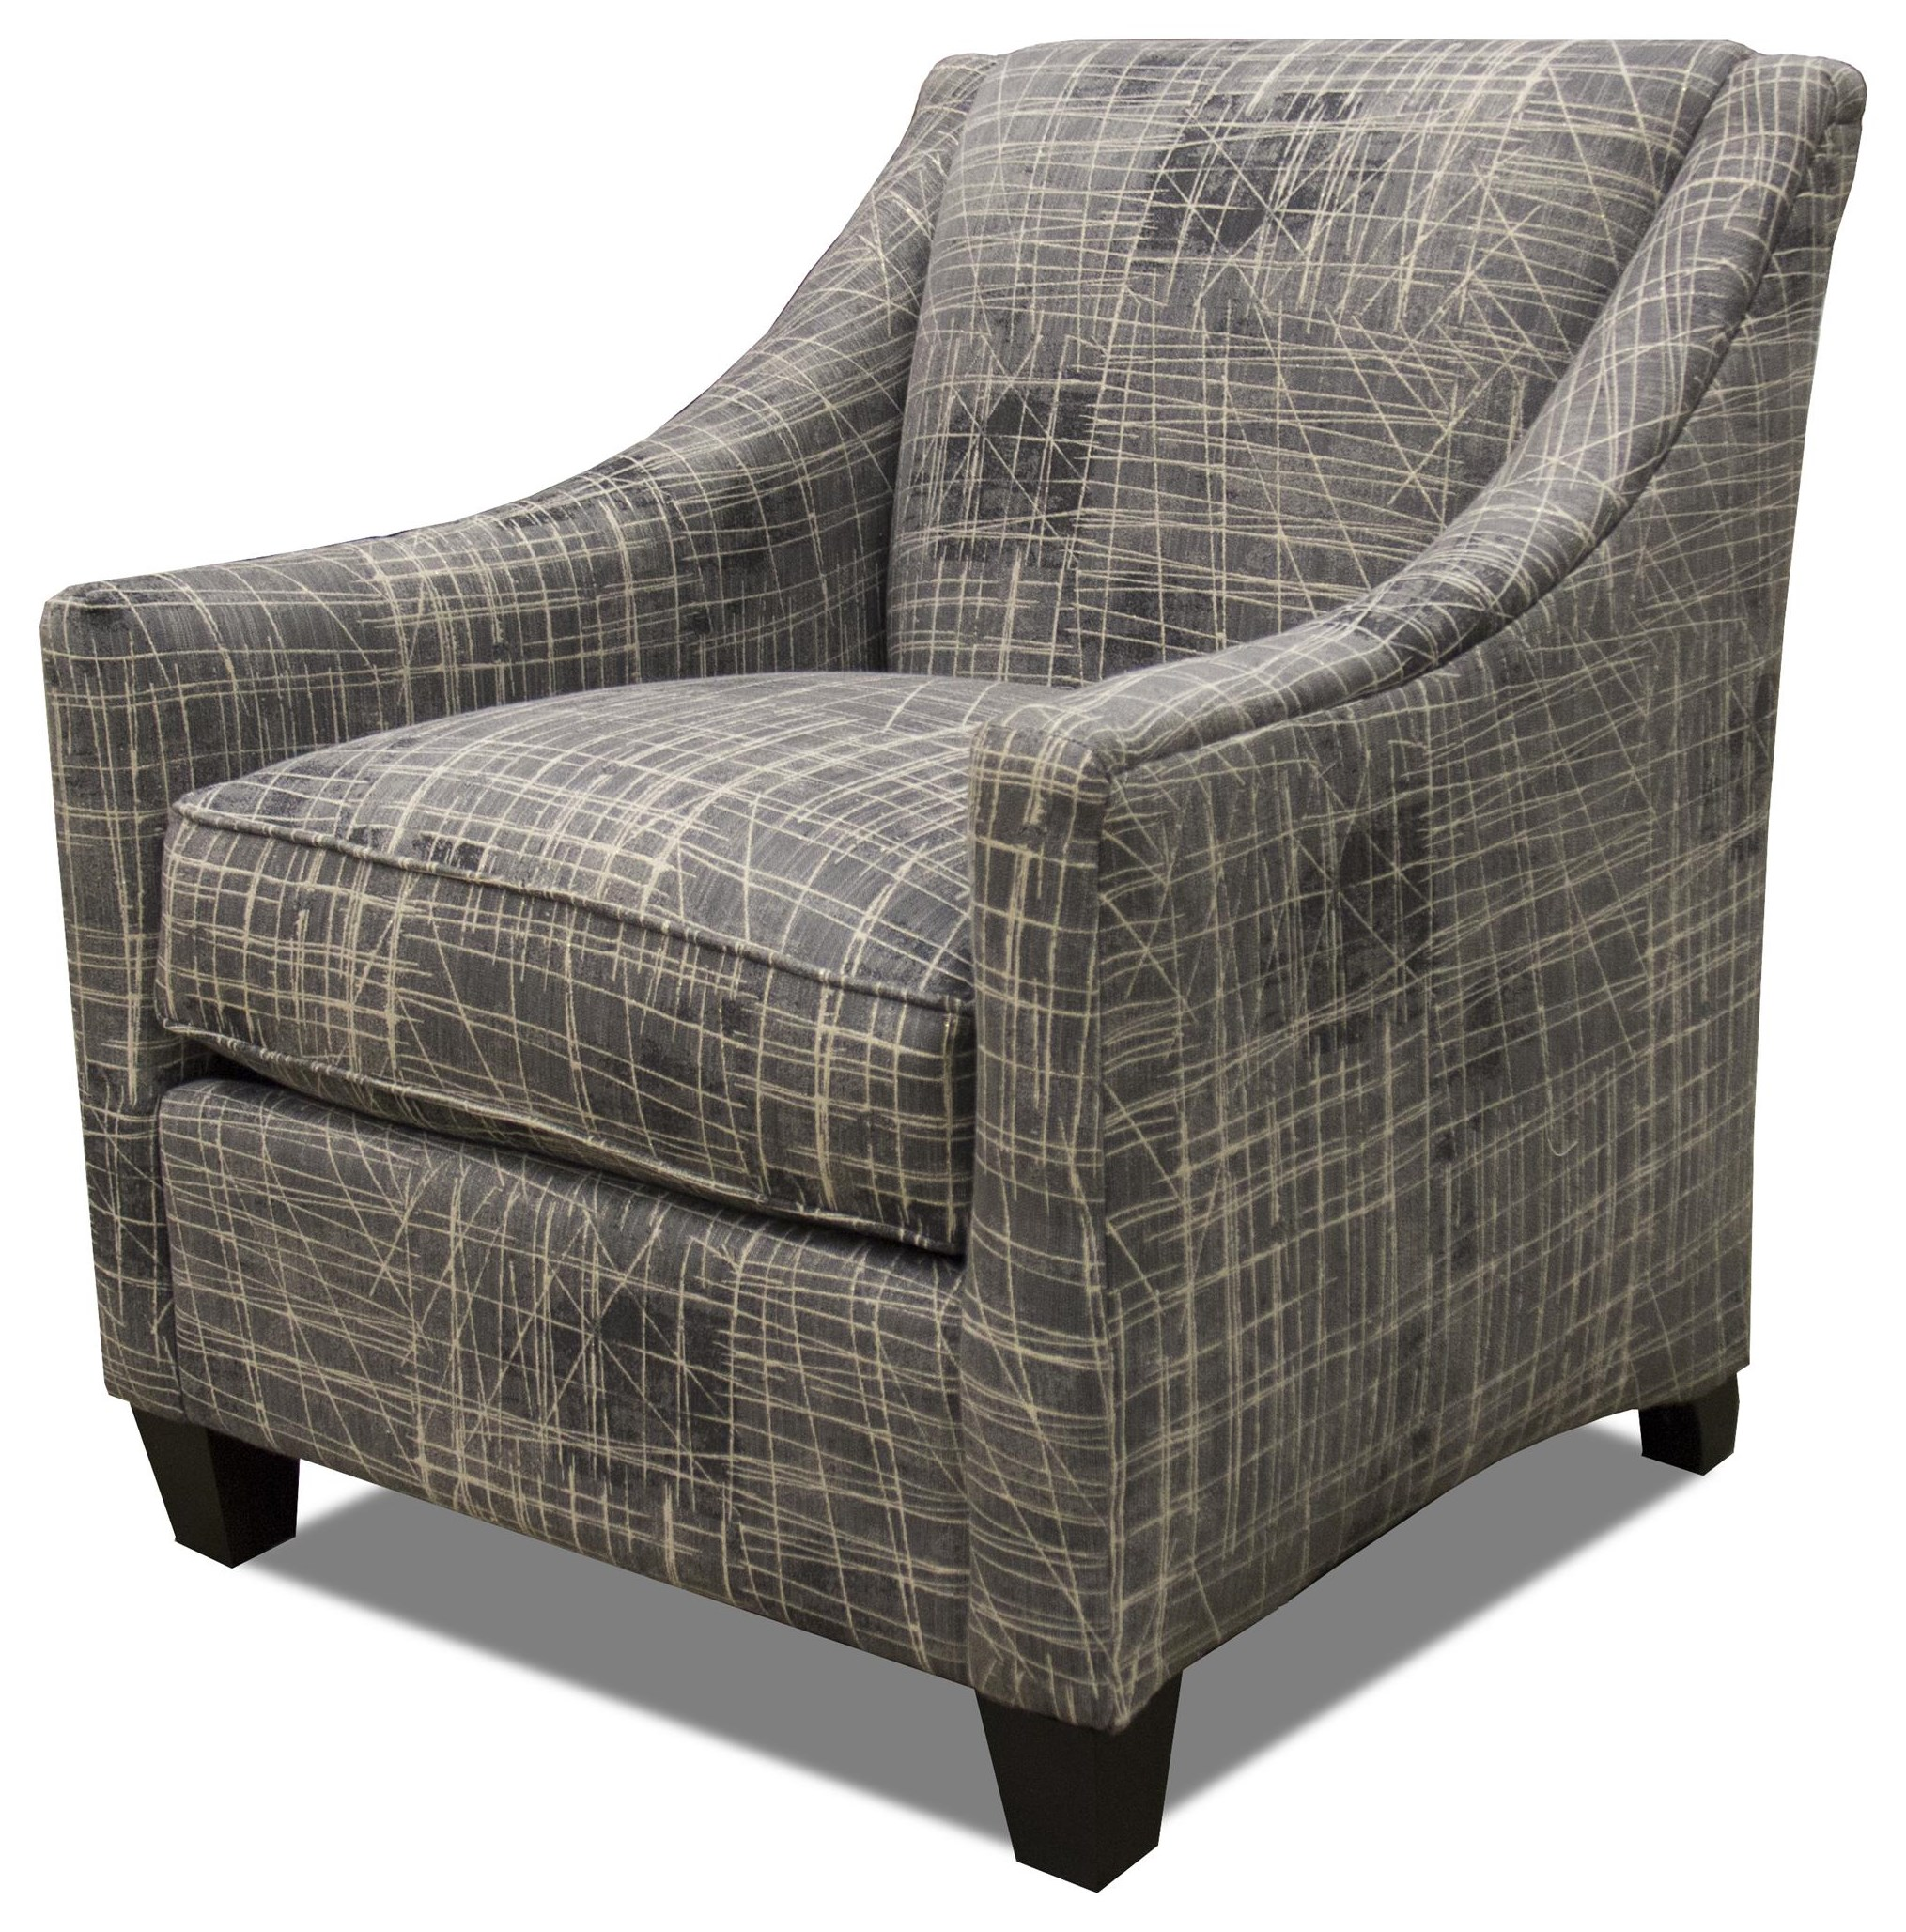 Bassett Exeter Corinna Accent Chair - Item Number: 1044-02-5152-5152-9-NO-BF807